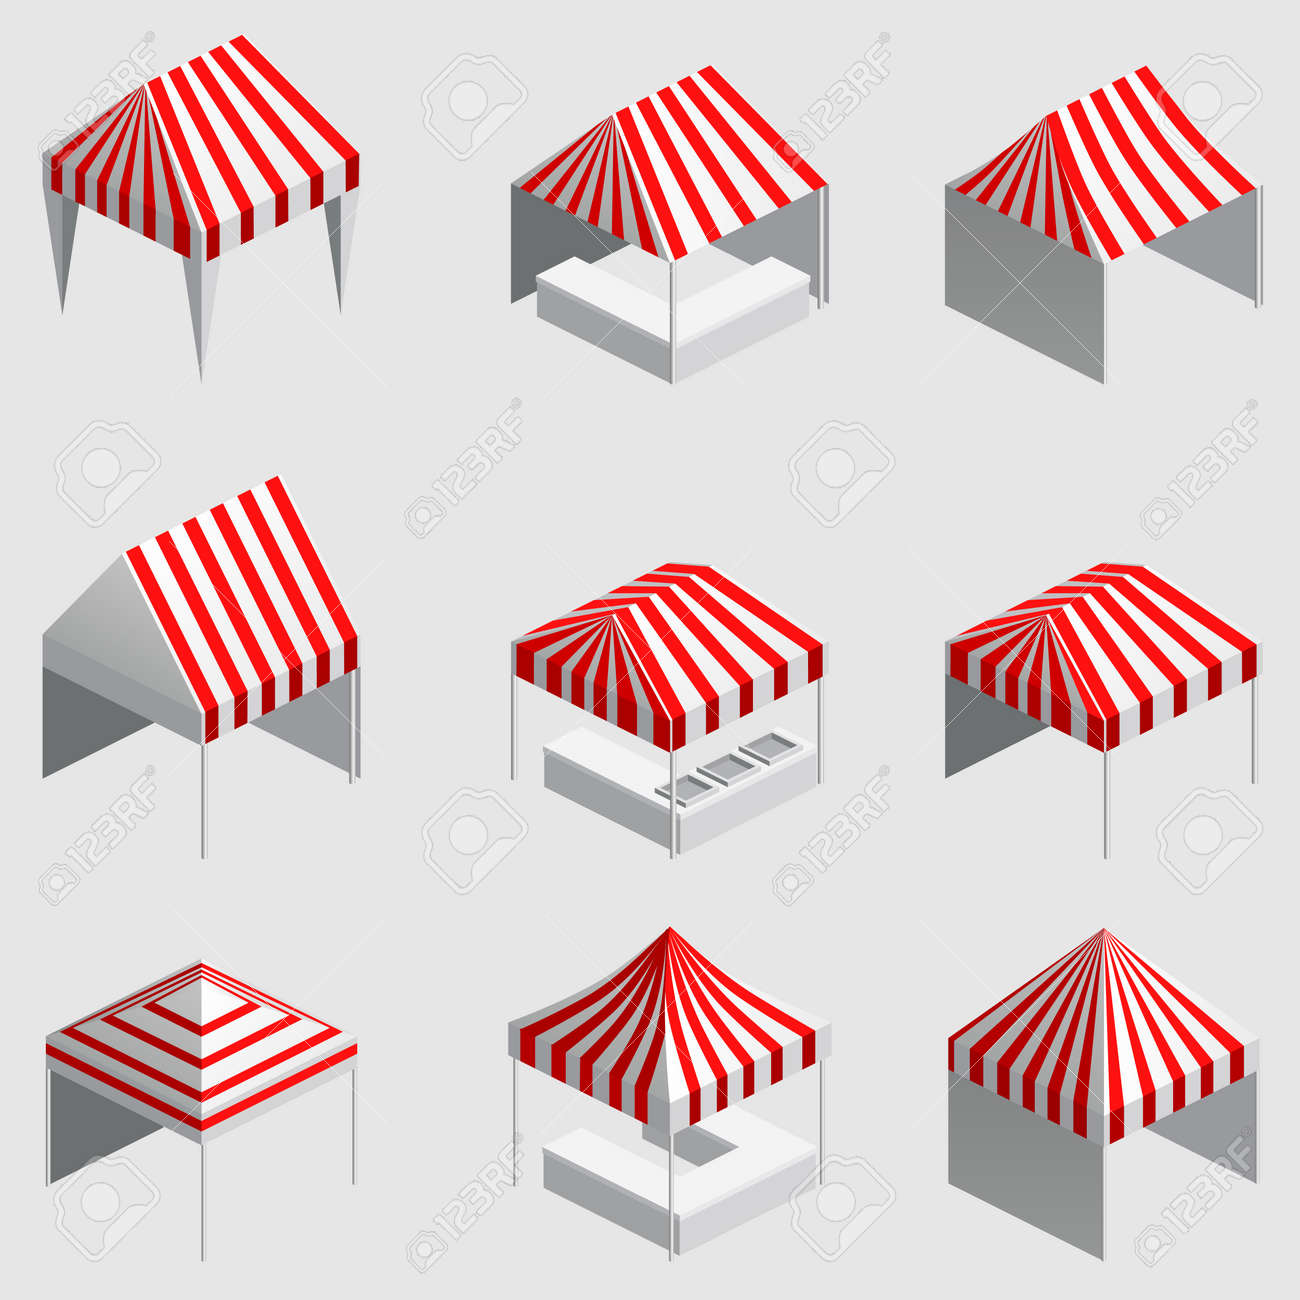 Set Isometric market stall, tent. Street awning canopy kiosk, counter, white red strings for fair, street food, market, grocery goods. Vector isolated - 171660275